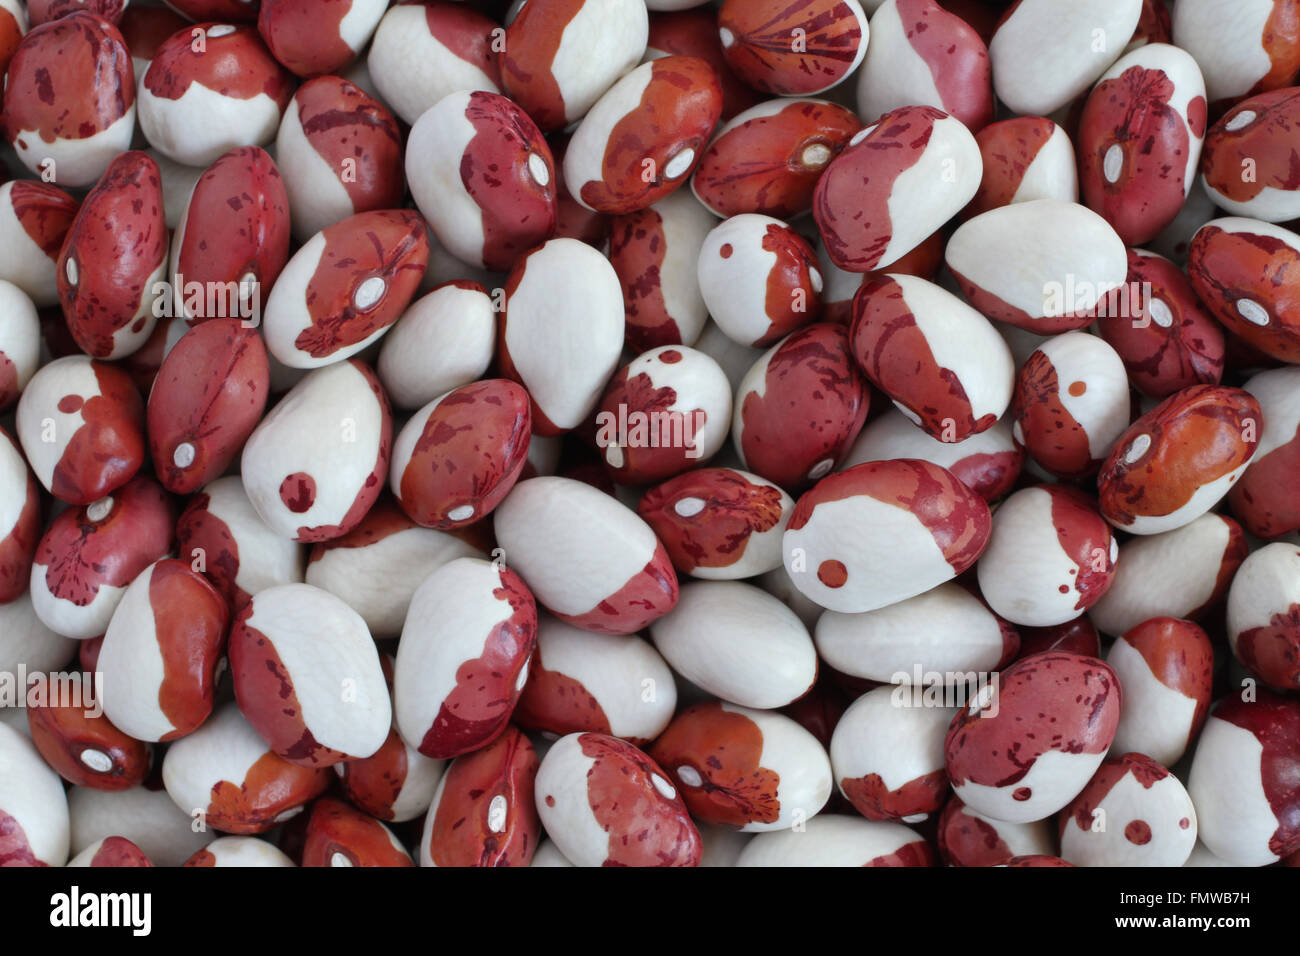 speckled red white beans stockfotos speckled red white beans bilder alamy. Black Bedroom Furniture Sets. Home Design Ideas